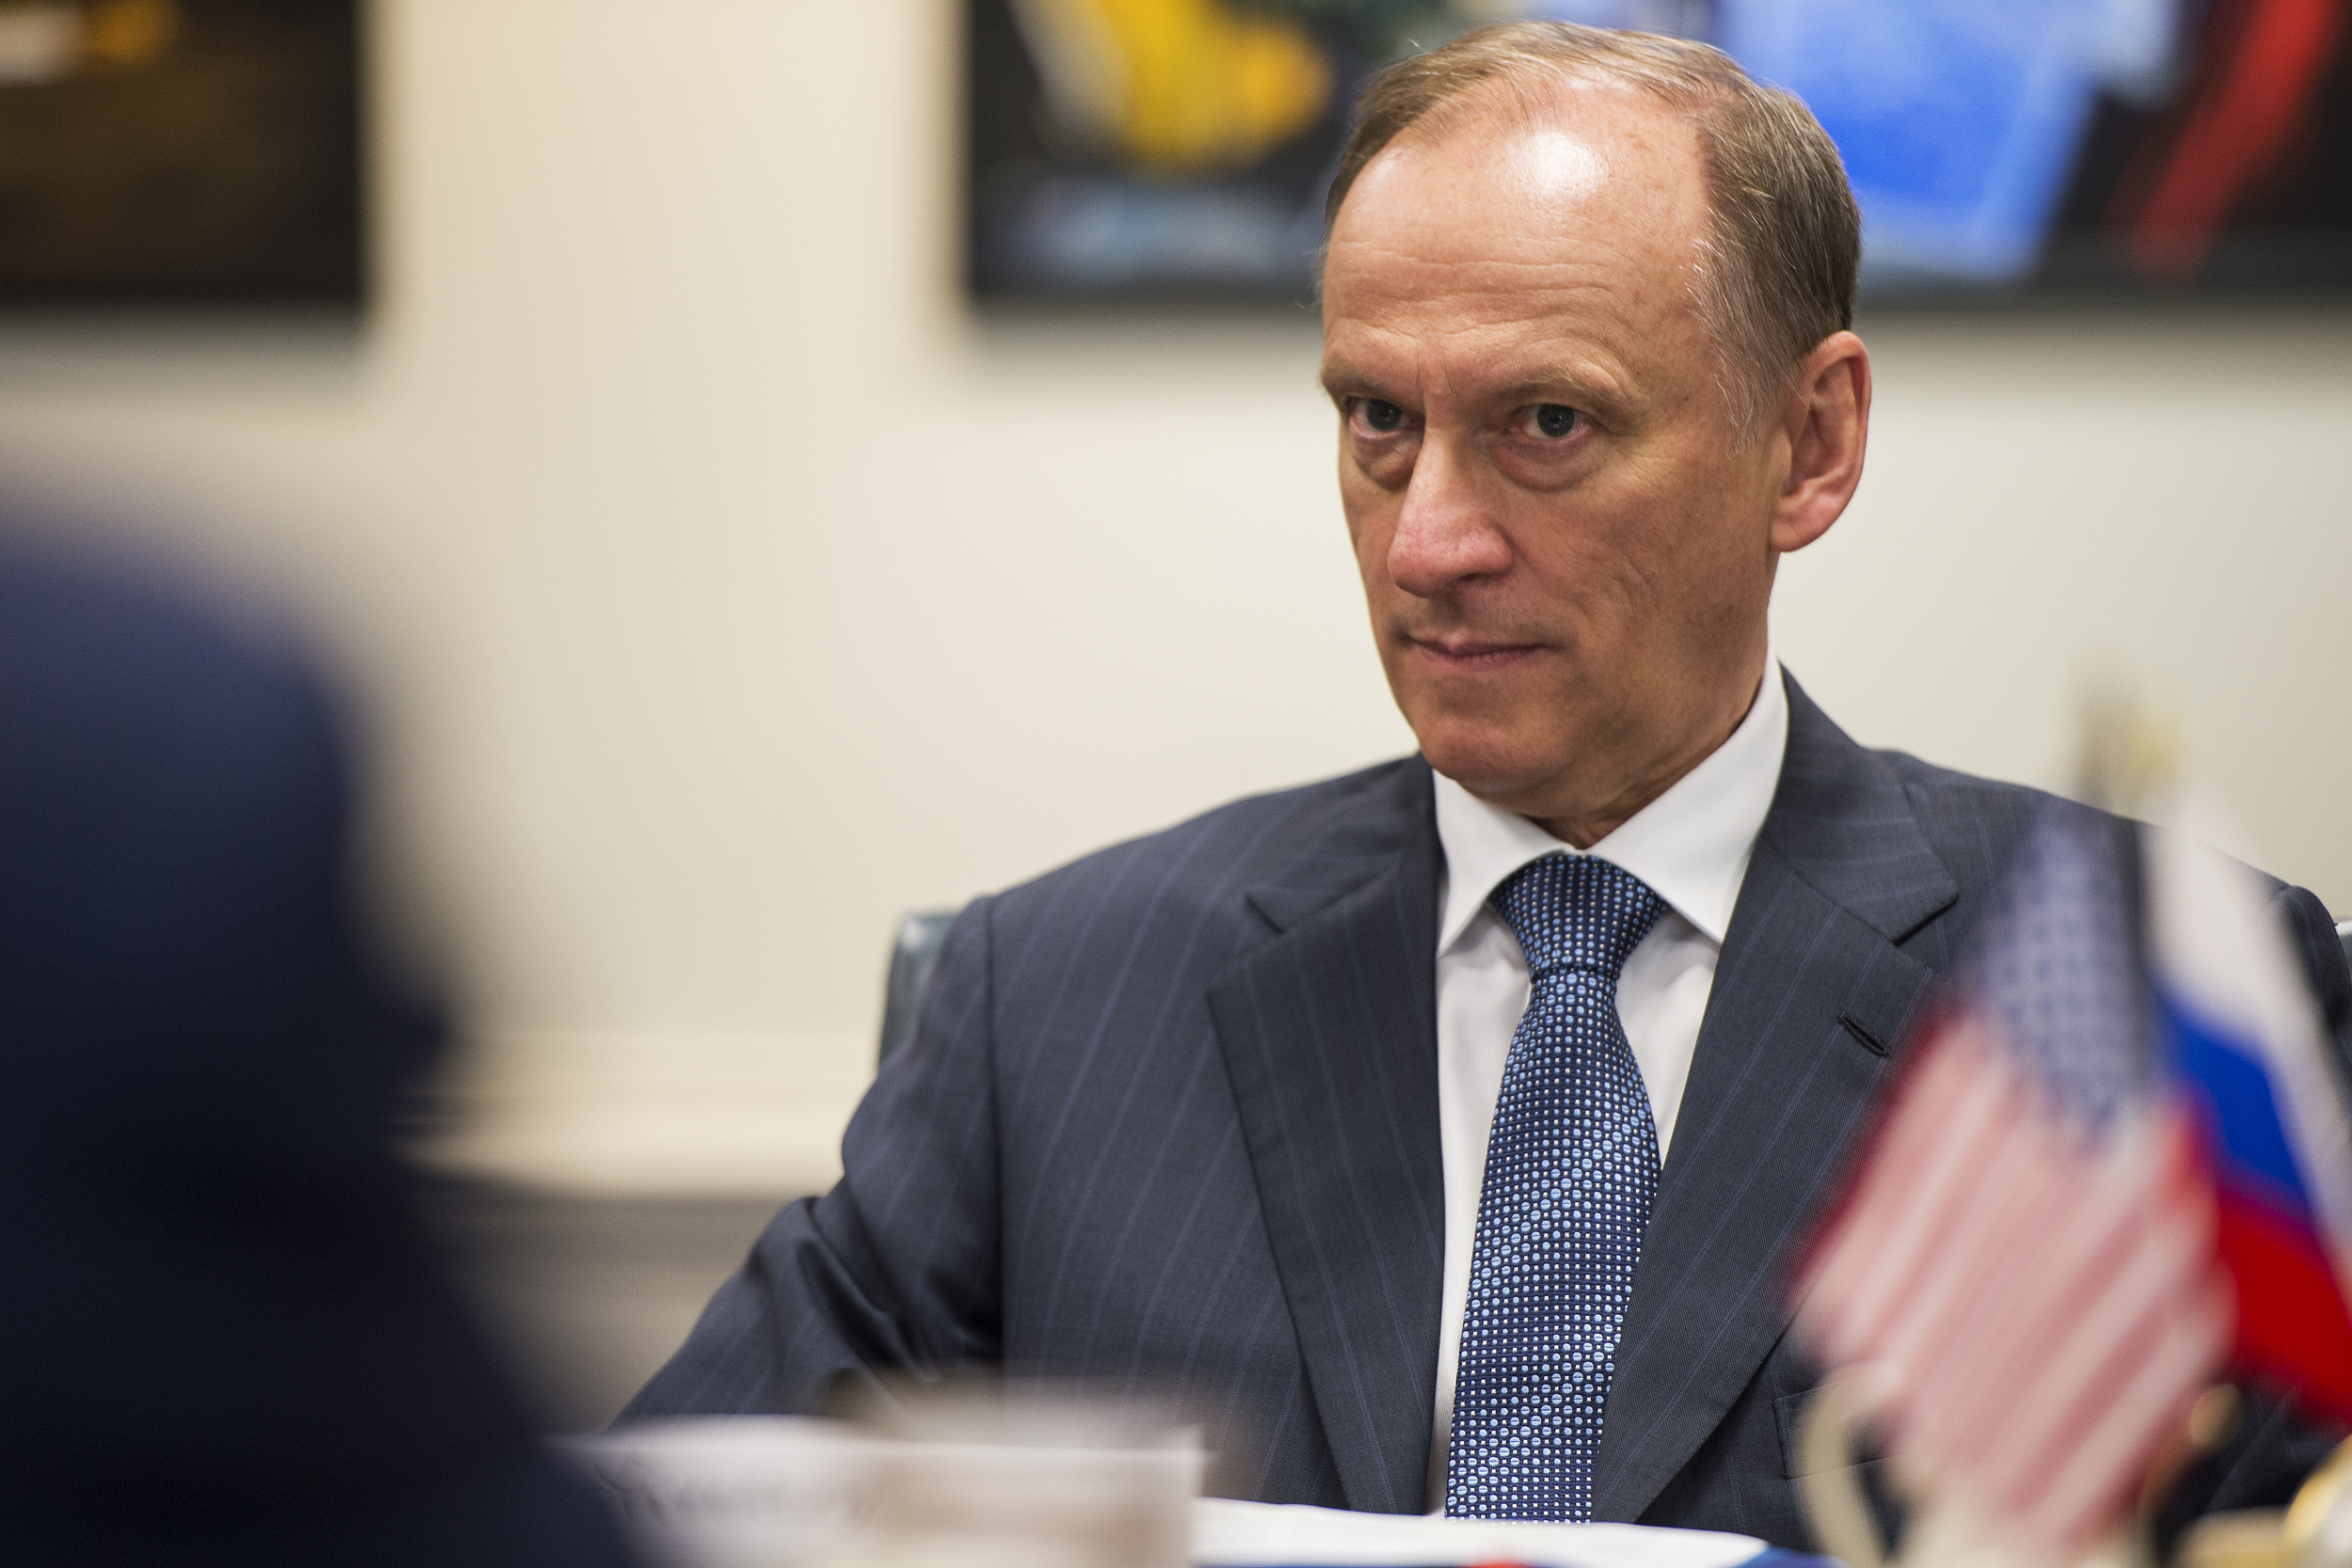 A photograph of Russia's Security Council Secretary Nikolai Patrushev at the Pentagon, May 21, 2013.